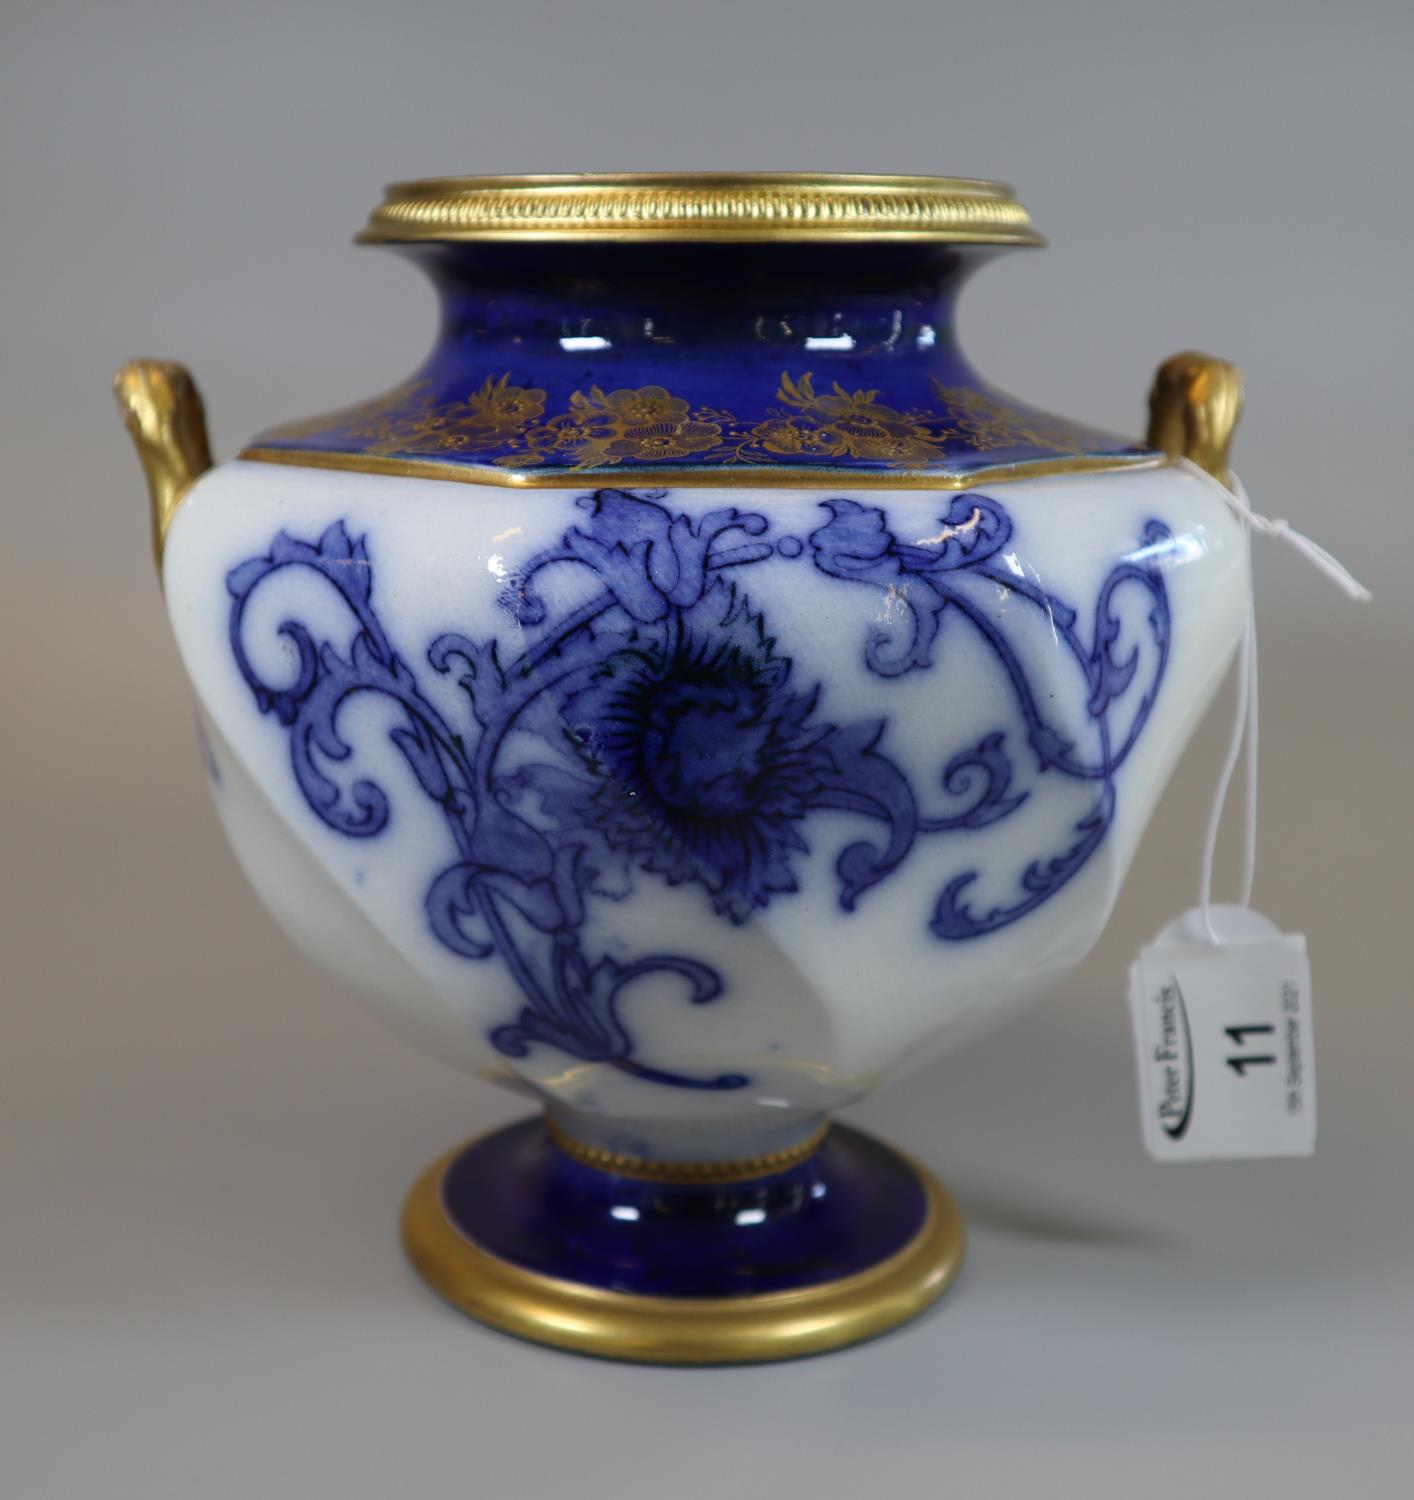 Moorcroft Macintyre blue and white floral and foliate two handled vase with gilded mounts, handles